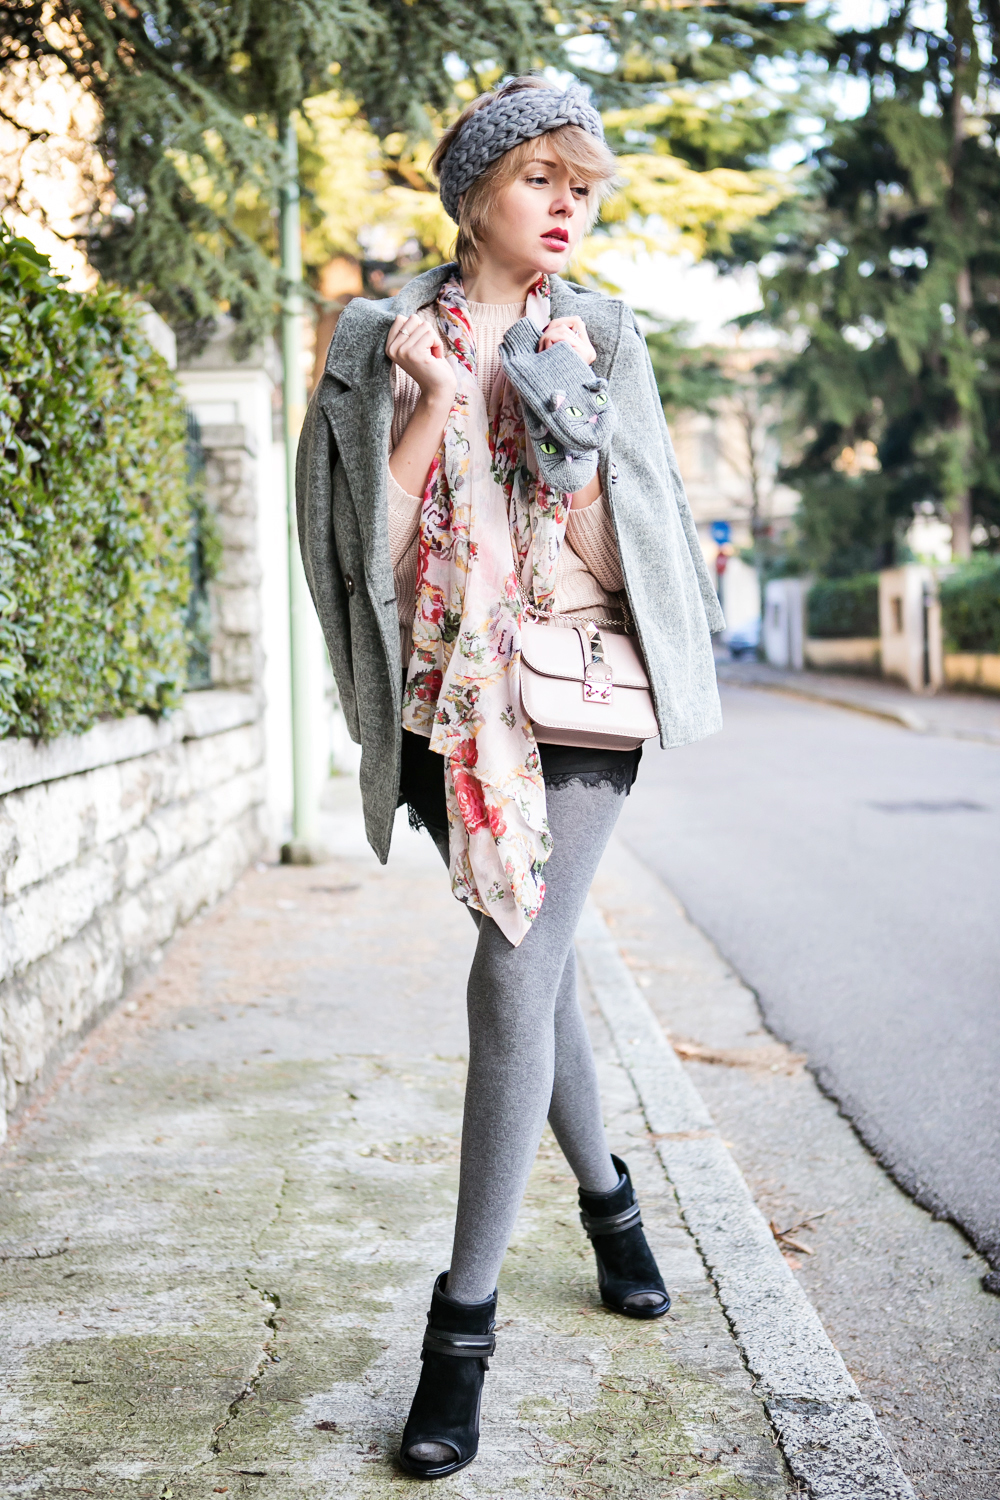 darya kamalova thecablook fashion blog russian blogger italy moda street style pixie short hair fashion blogger zara sweater lace shorts cat mittens kitten sam edelman sheinside grey coat revolve clothing valentino studded rose rock bag_-36 copy